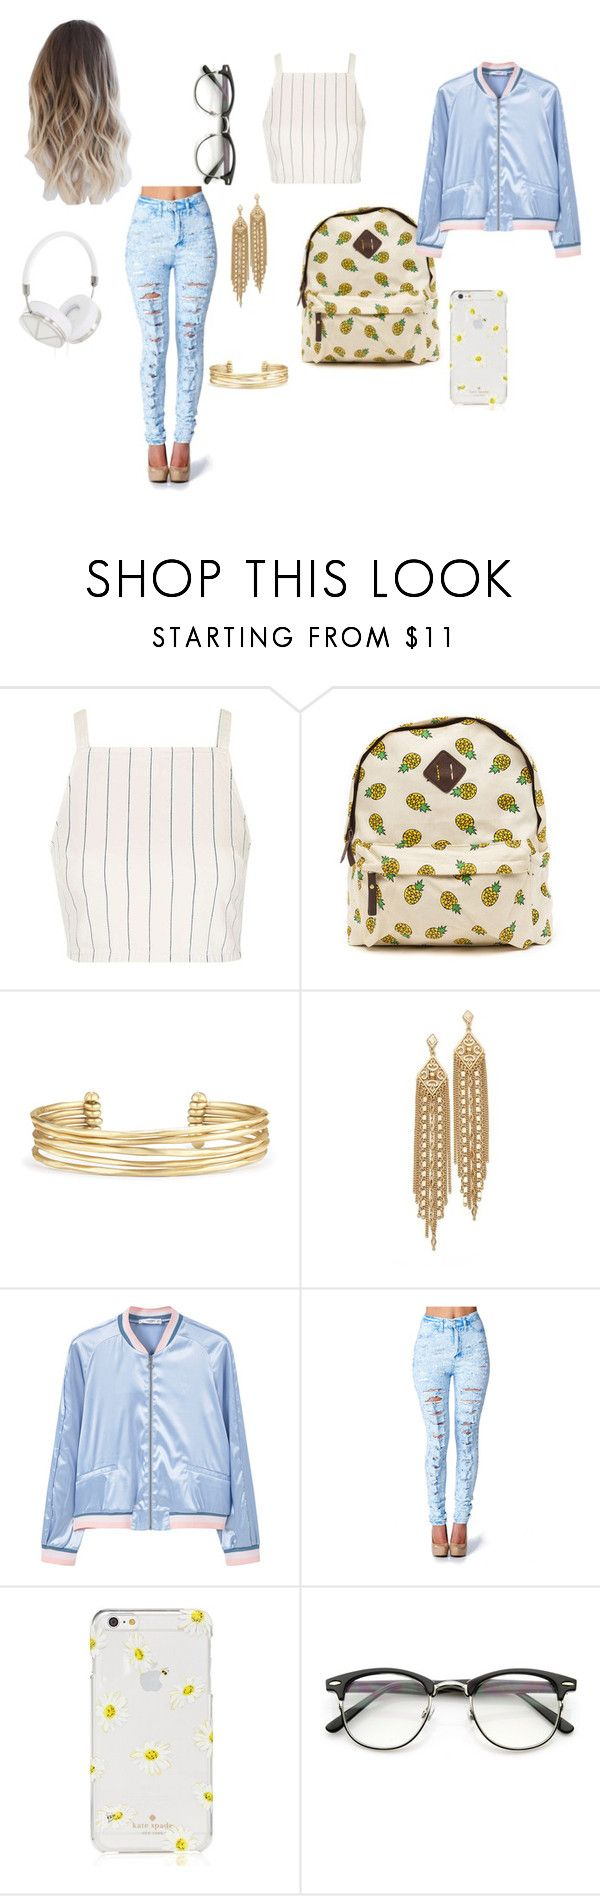 """""""school life"""" by zanthecurtus ❤ liked on Polyvore featuring Topshop, Stella & Dot, Capwell + Co, MANGO, Kate Spade and Frends"""